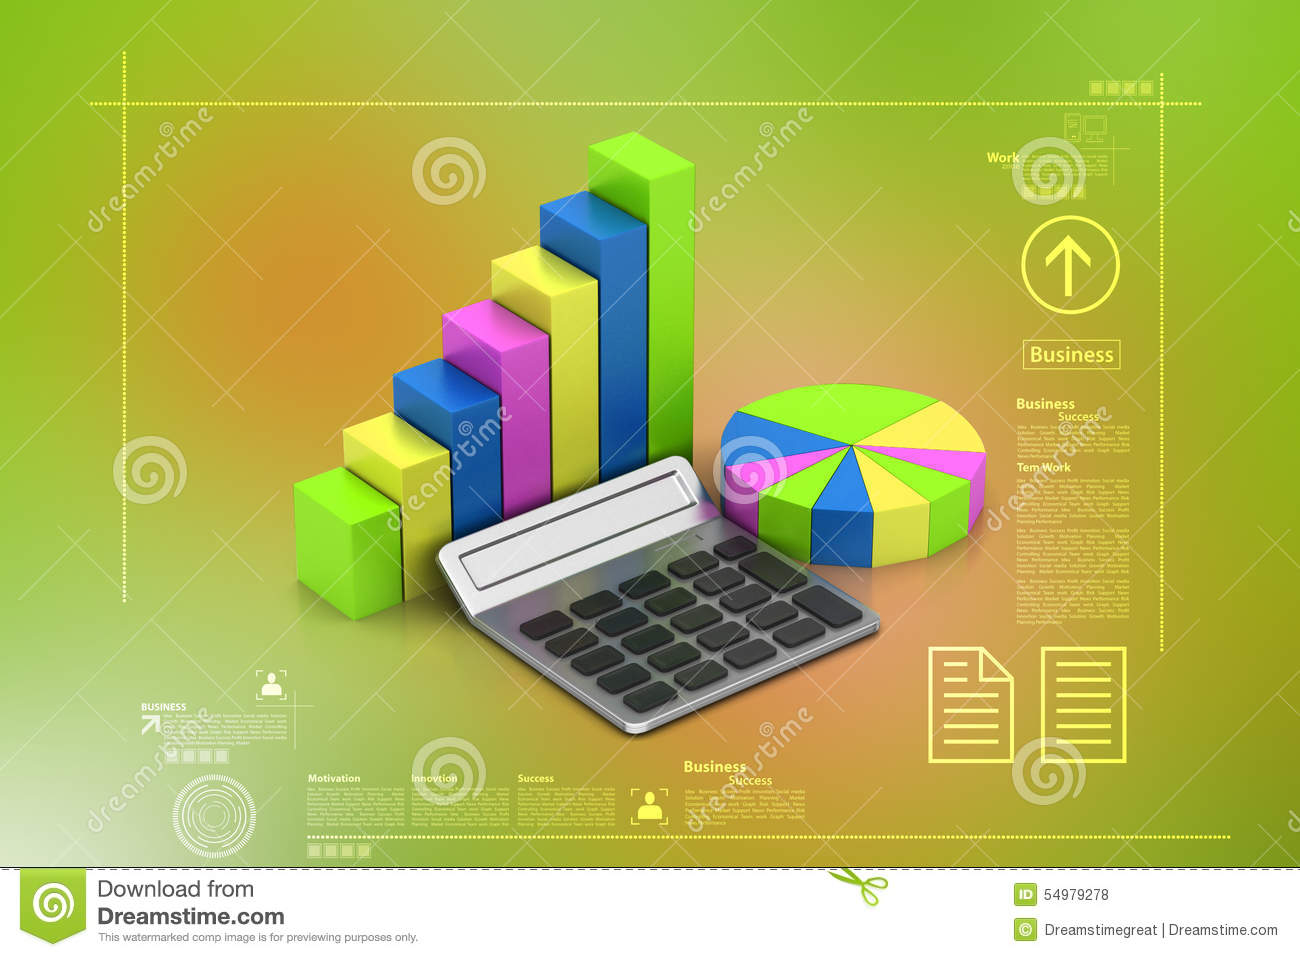 Pie chart and bar graph